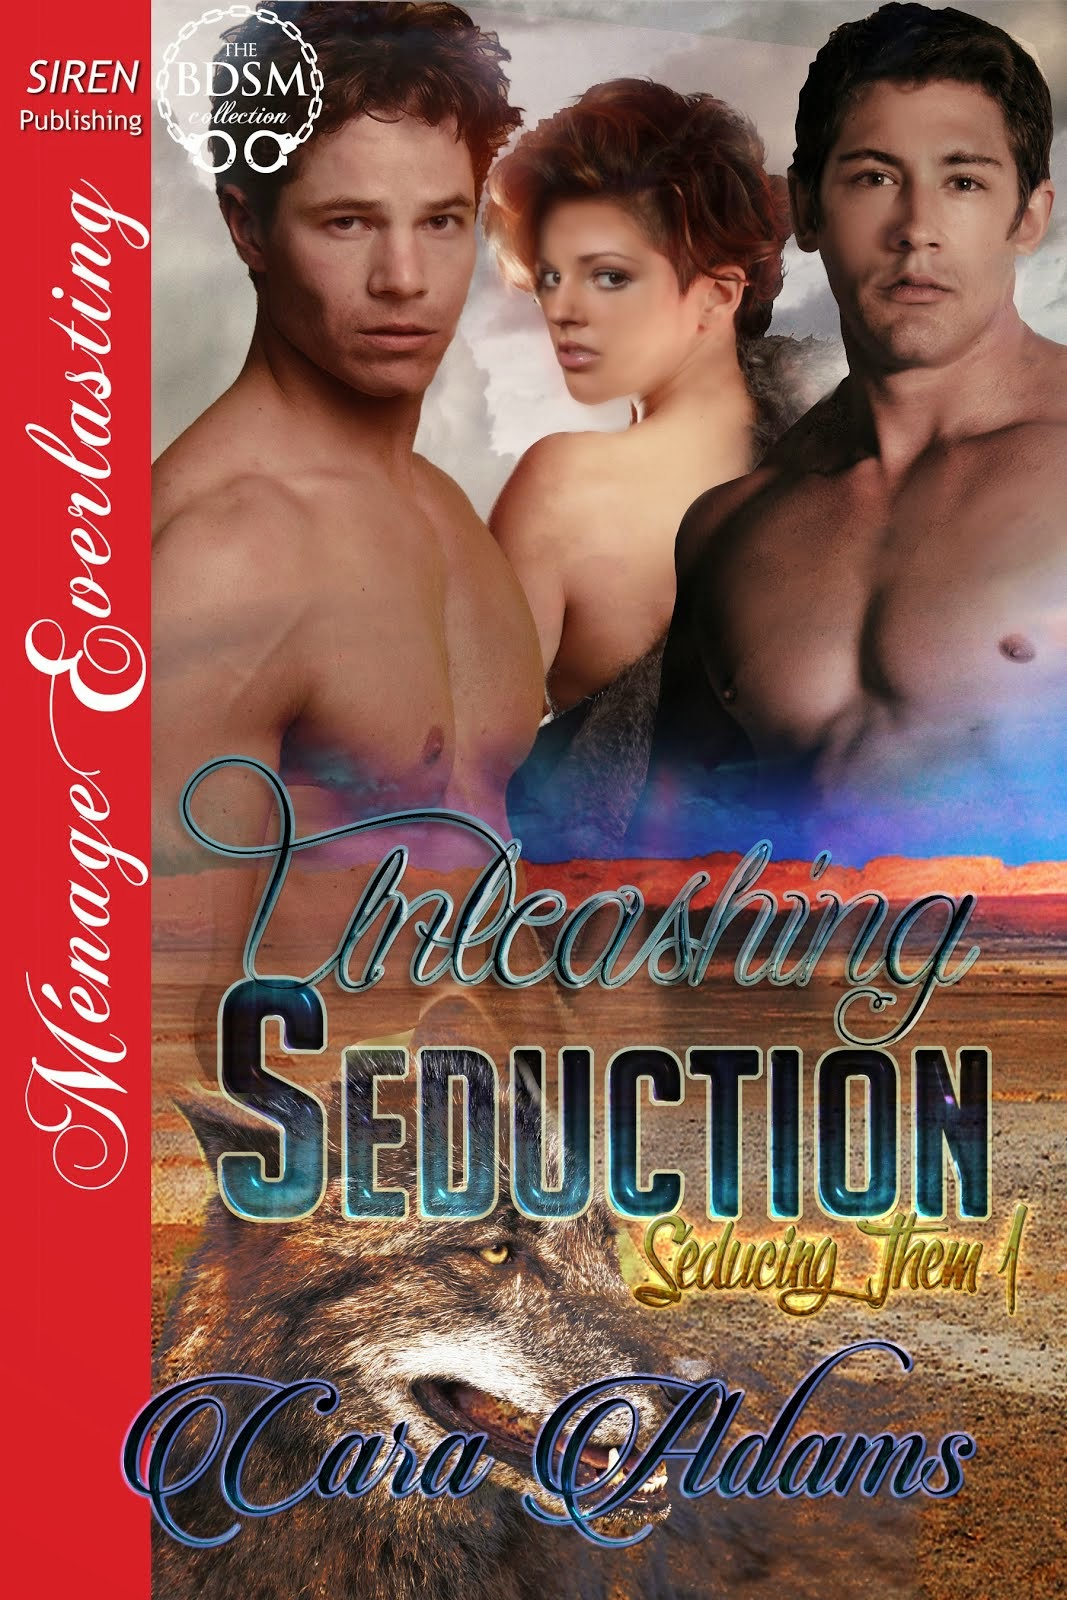 Unleashing Seduction